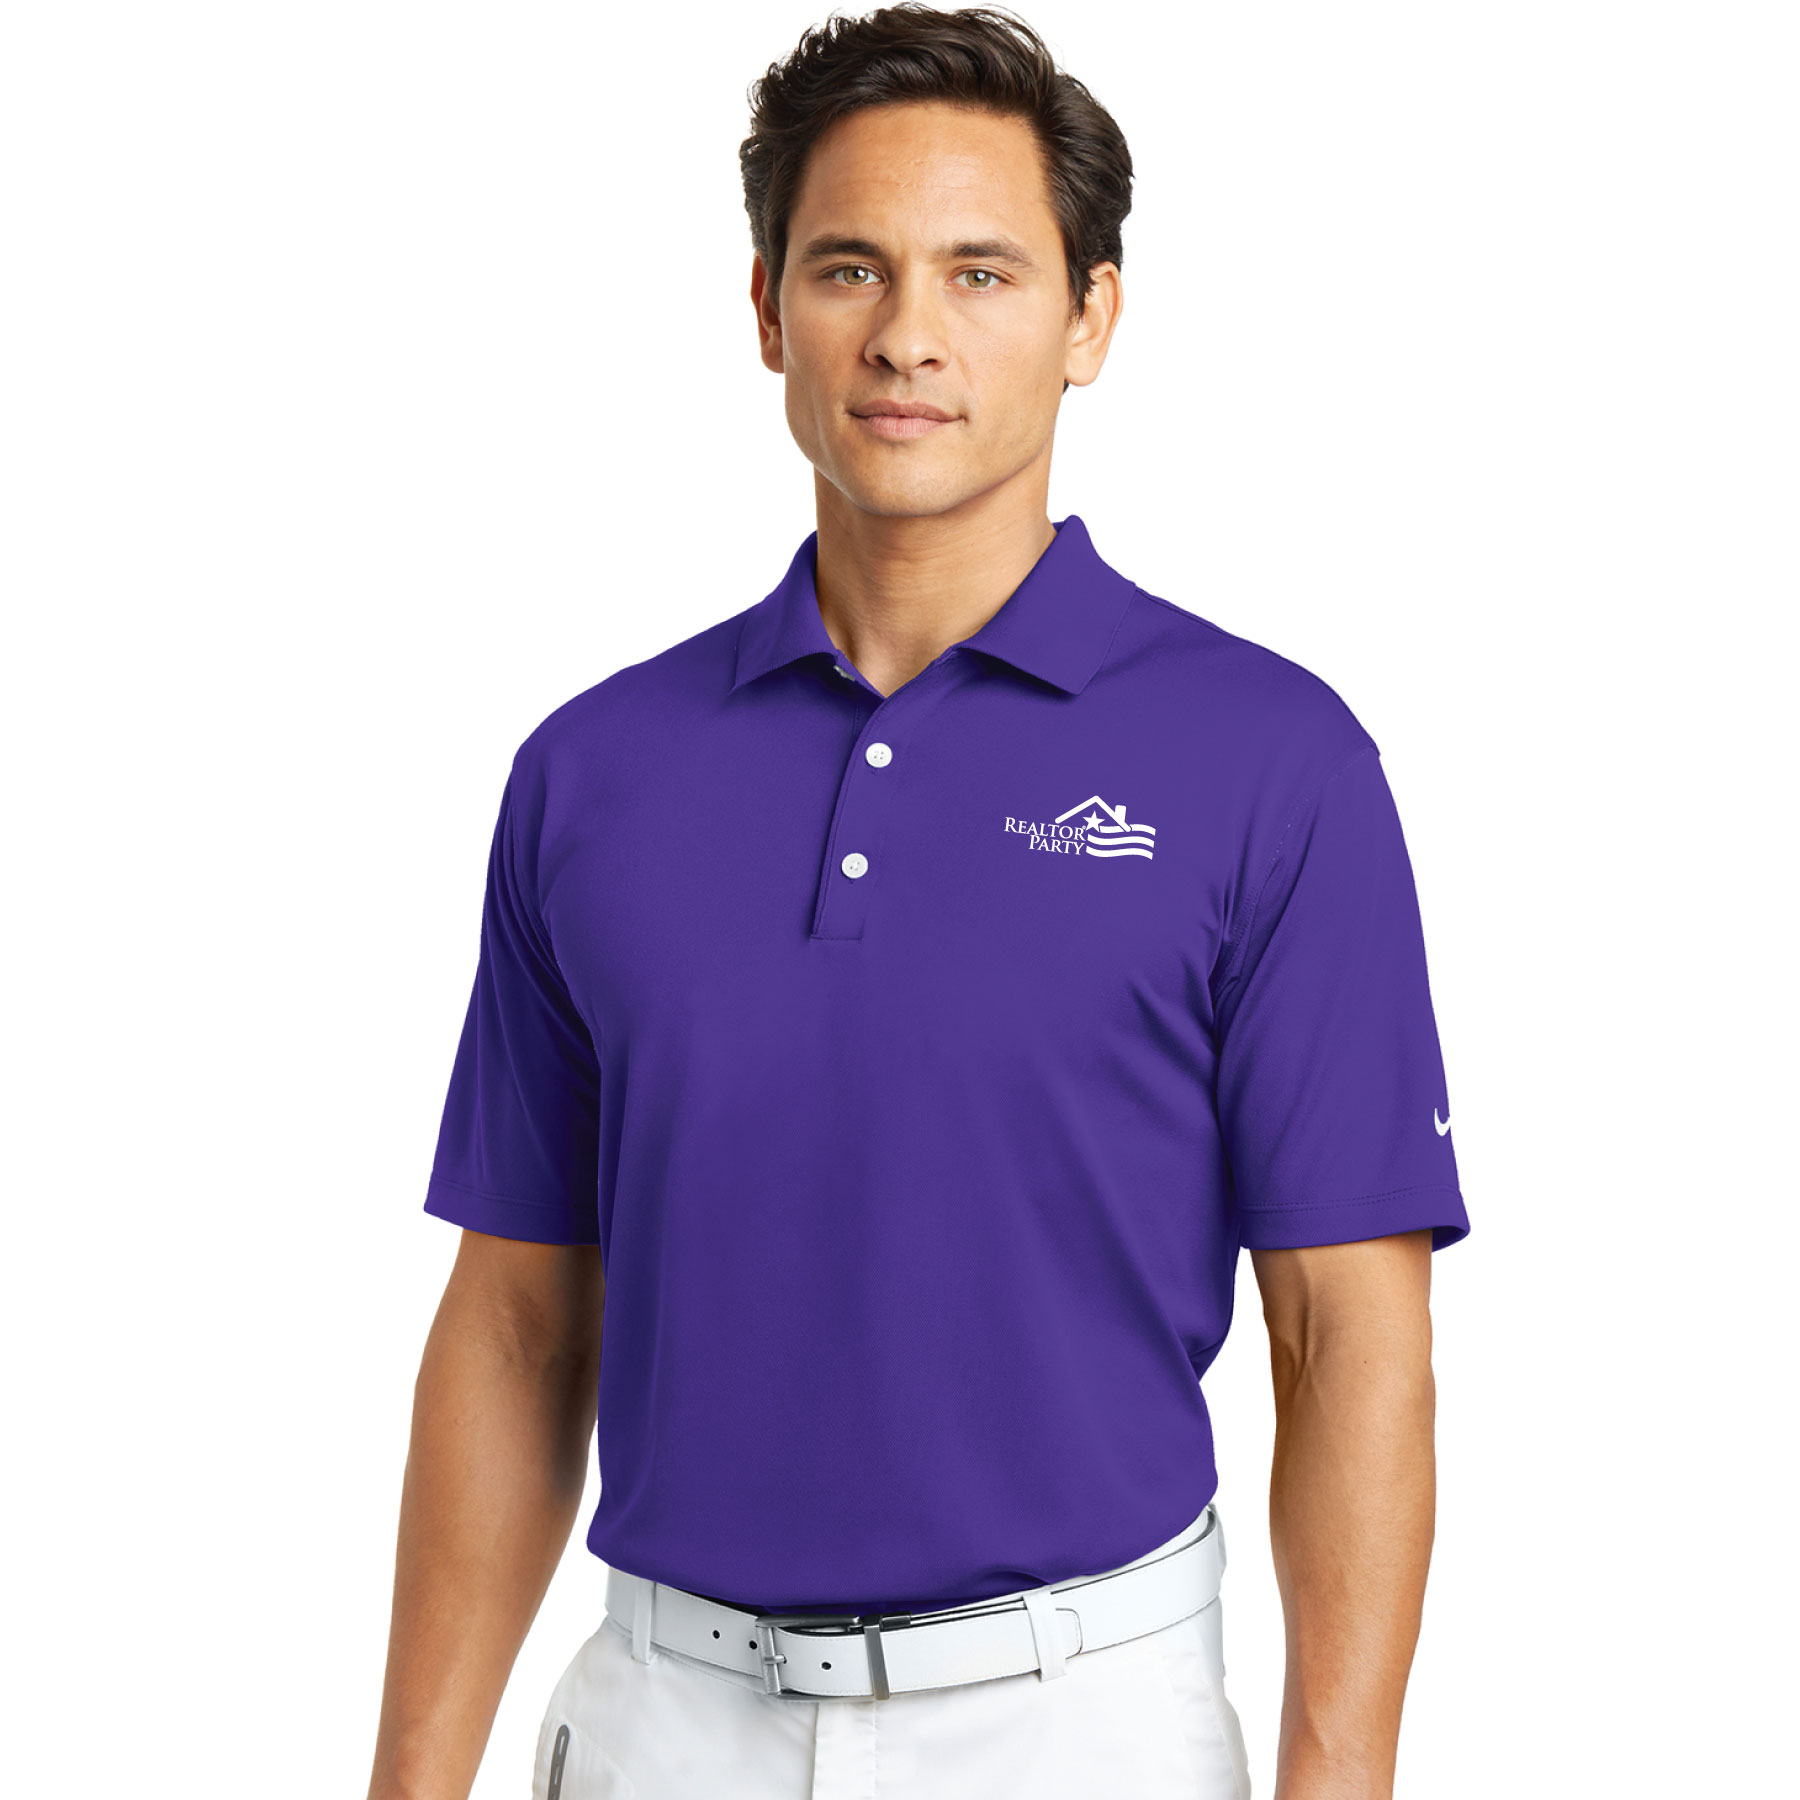 REALTOR® Party Nike® Tech Basic Dri-FIT® Polo - RCG1301-RP